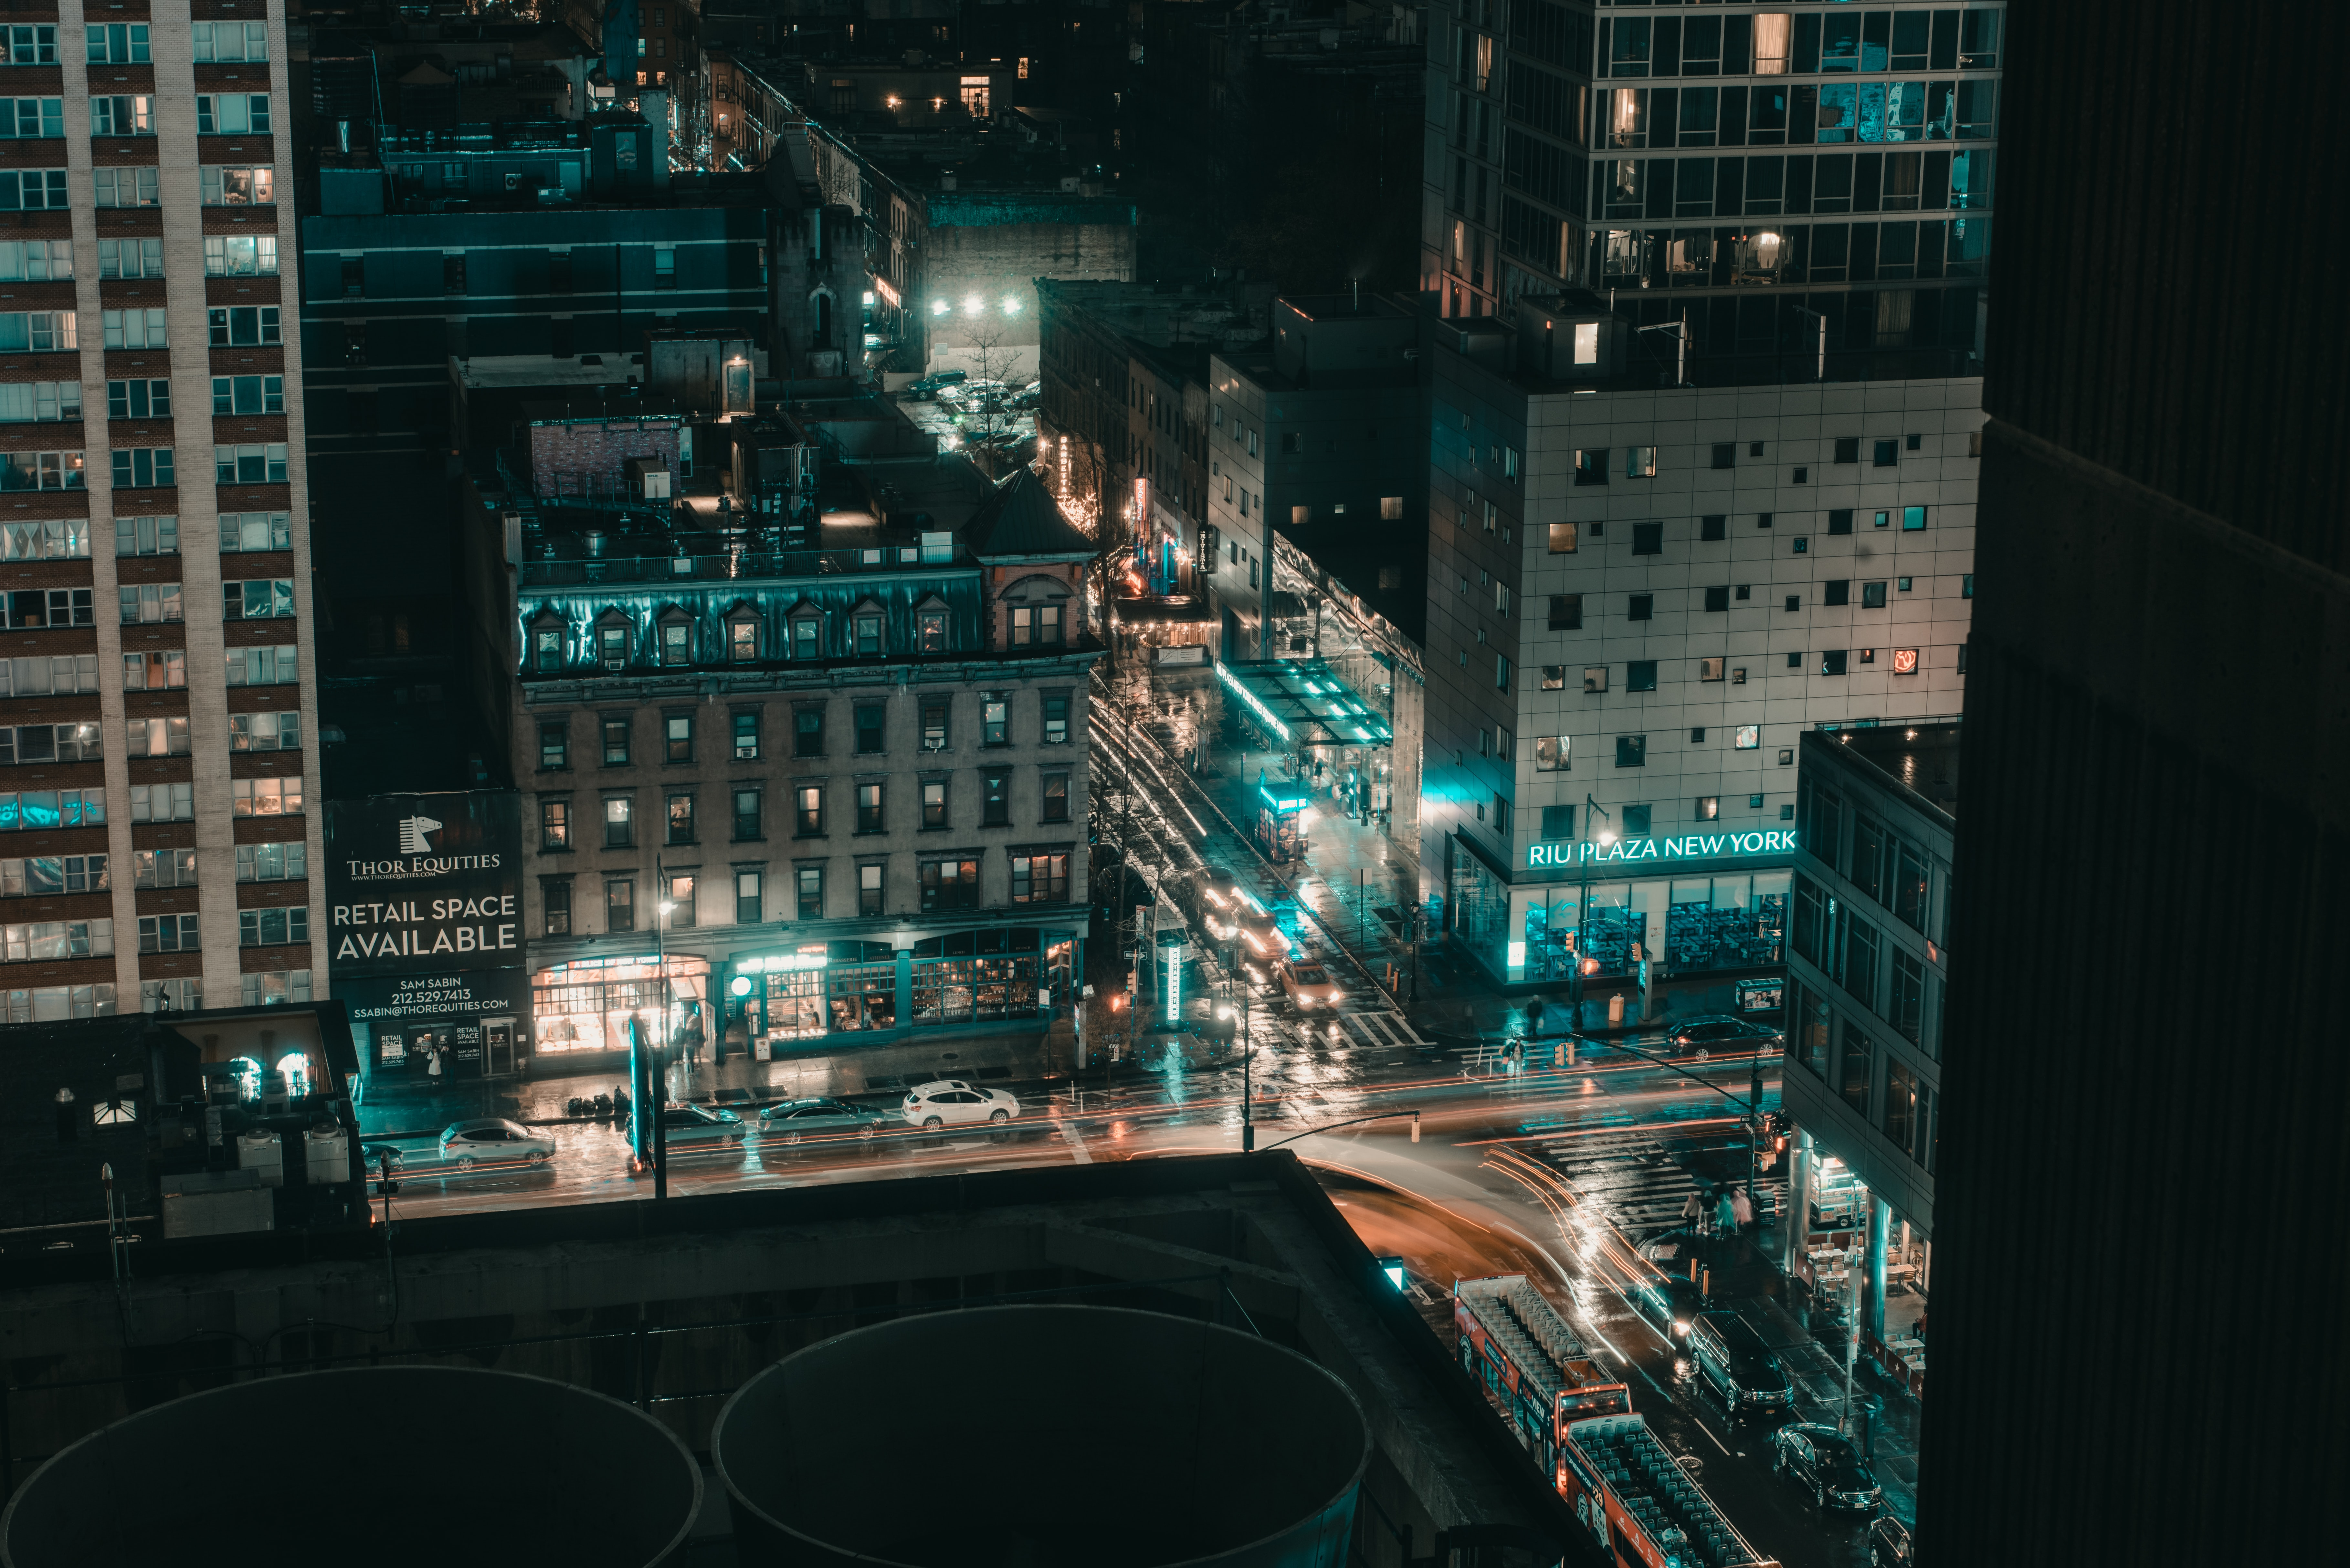 aerial photography of lights in city buildings during nighttime